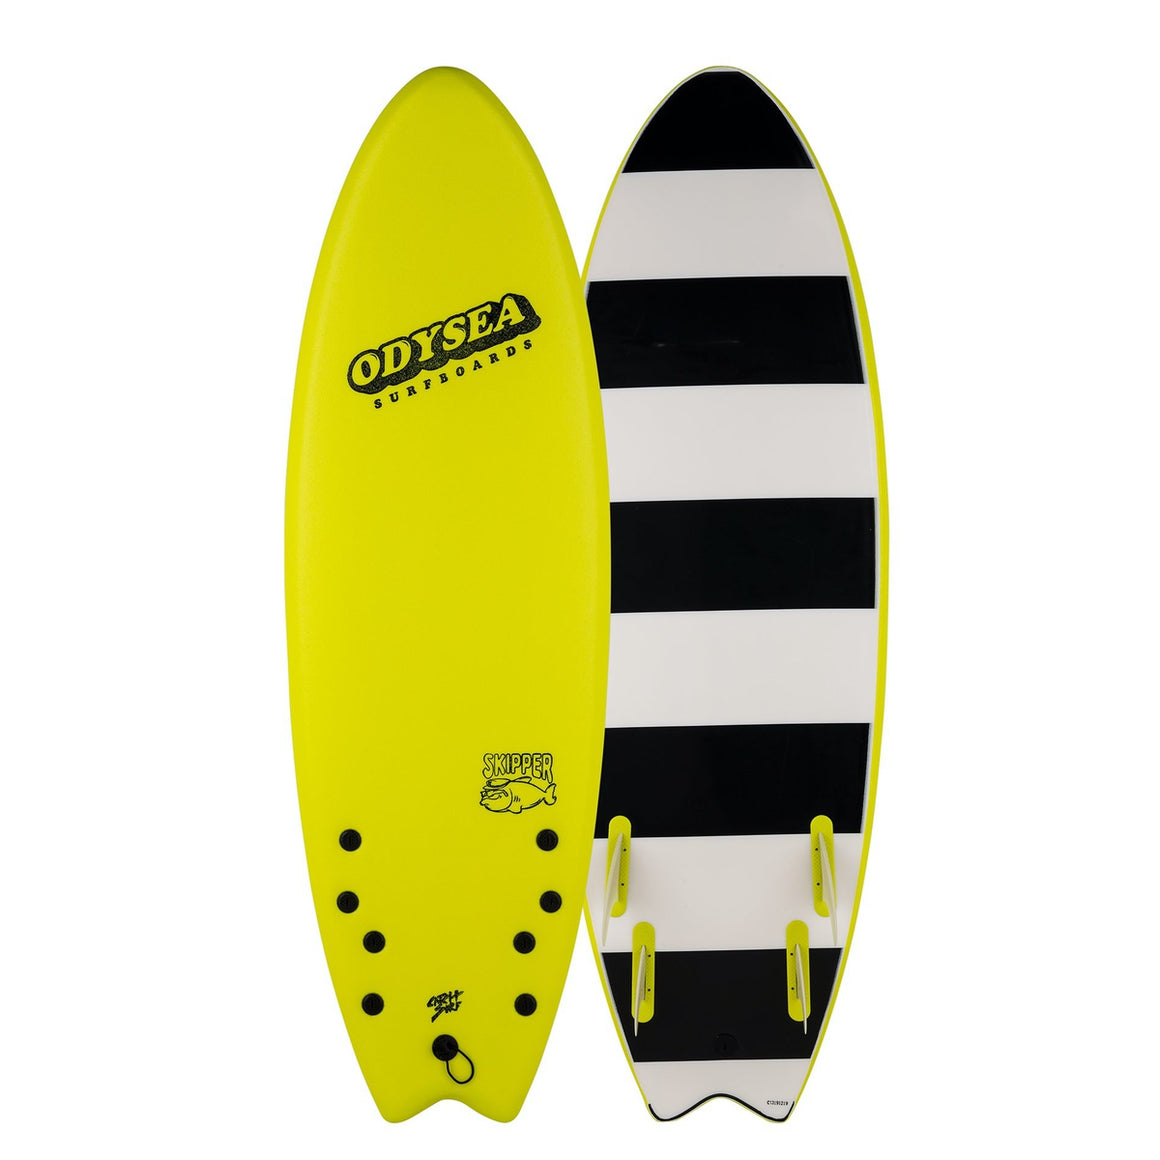 Odysea 6'6 SKIPPER Quad - Electric Lemon 20